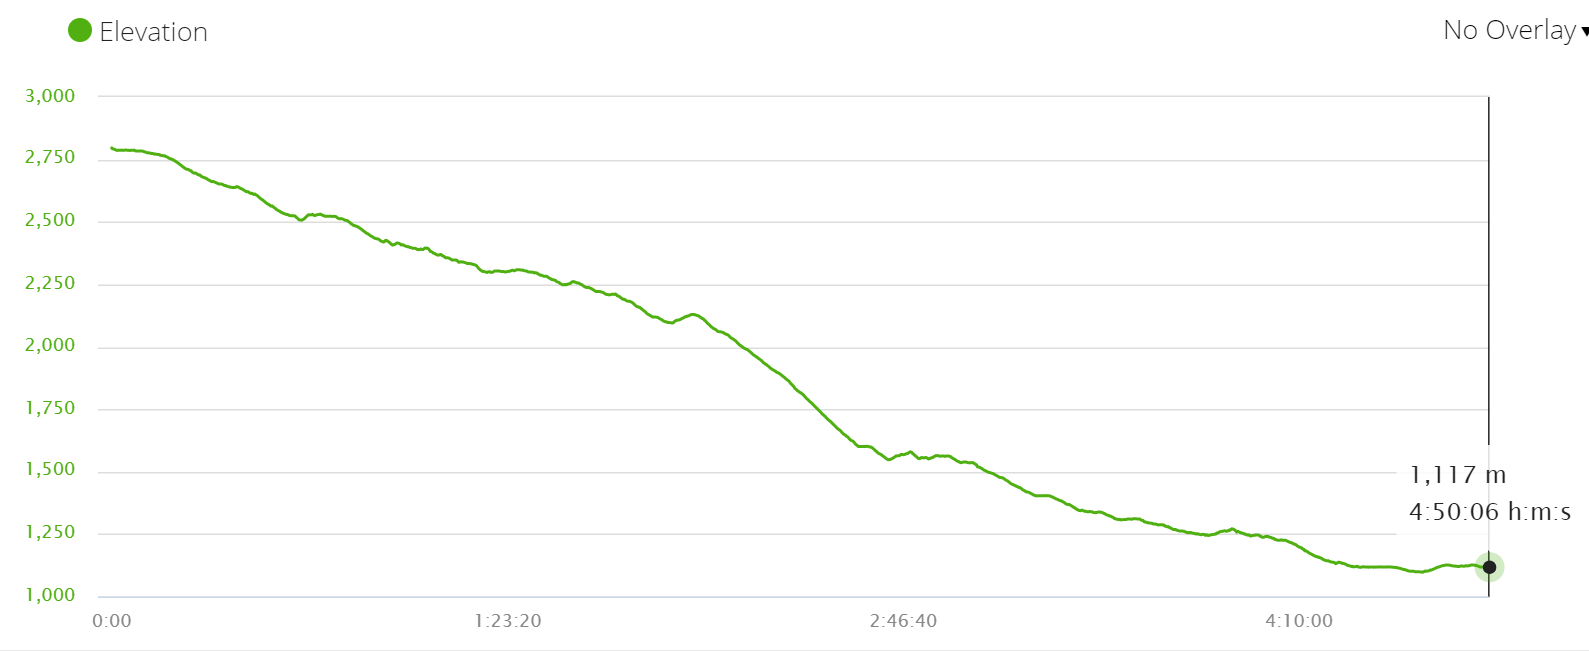 Annapurna circuit elevation profile walk from Ghorepani to Nayapul